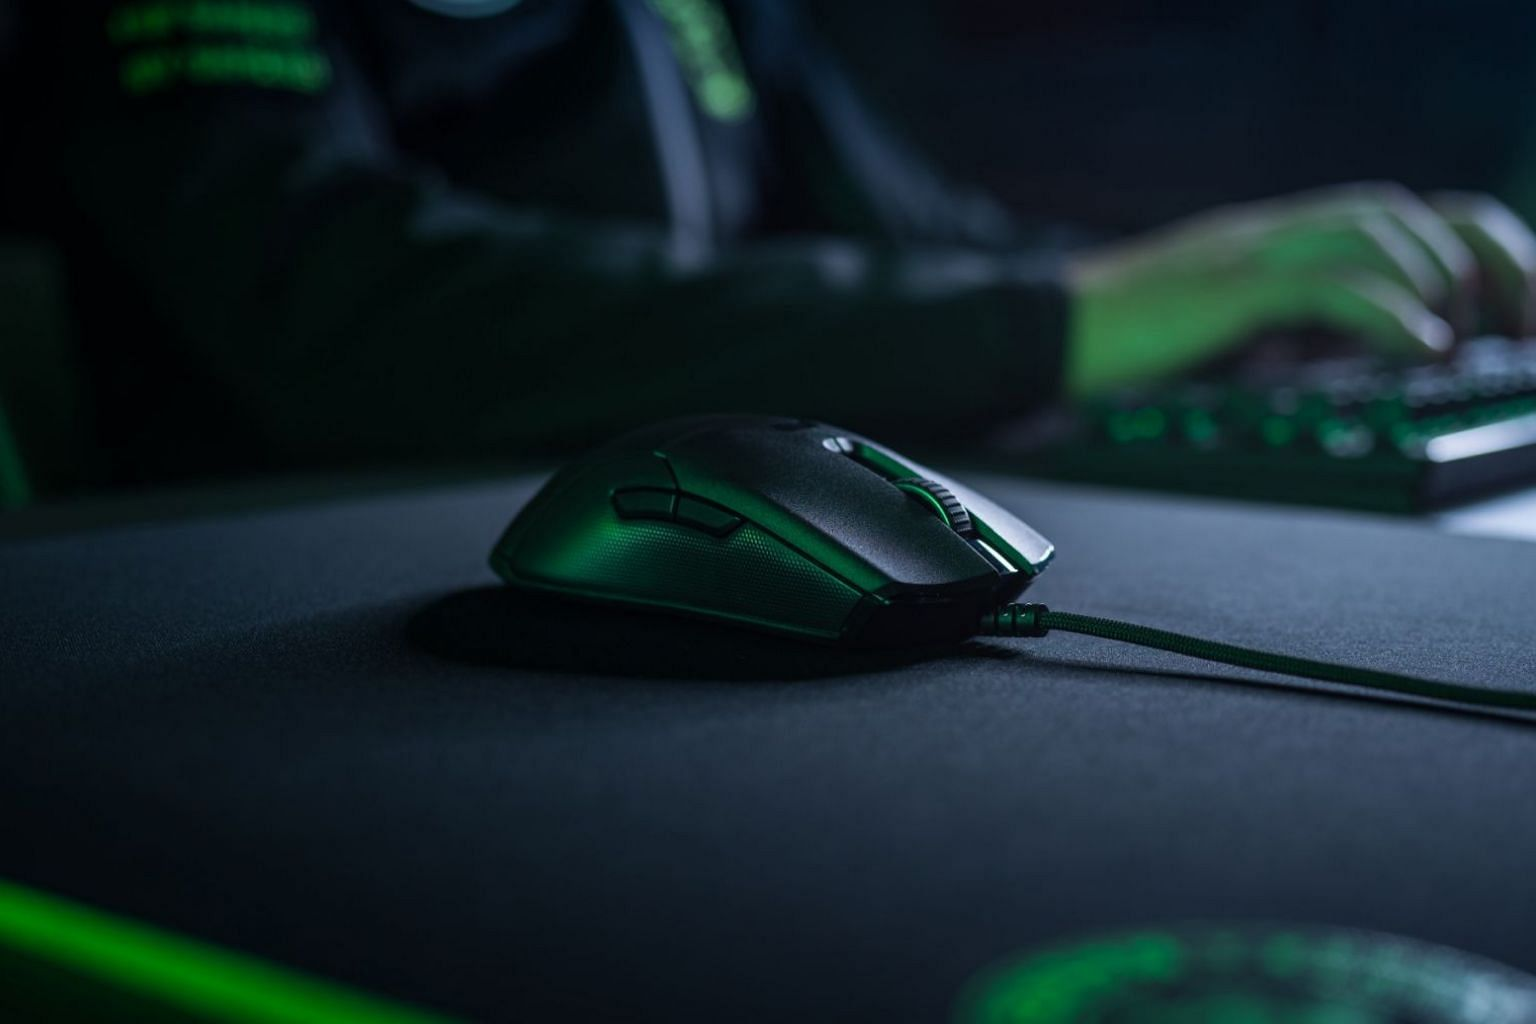 Razer's latest flagship Viper gaming mouse uses optical switches instead of the usual mechanical ones.